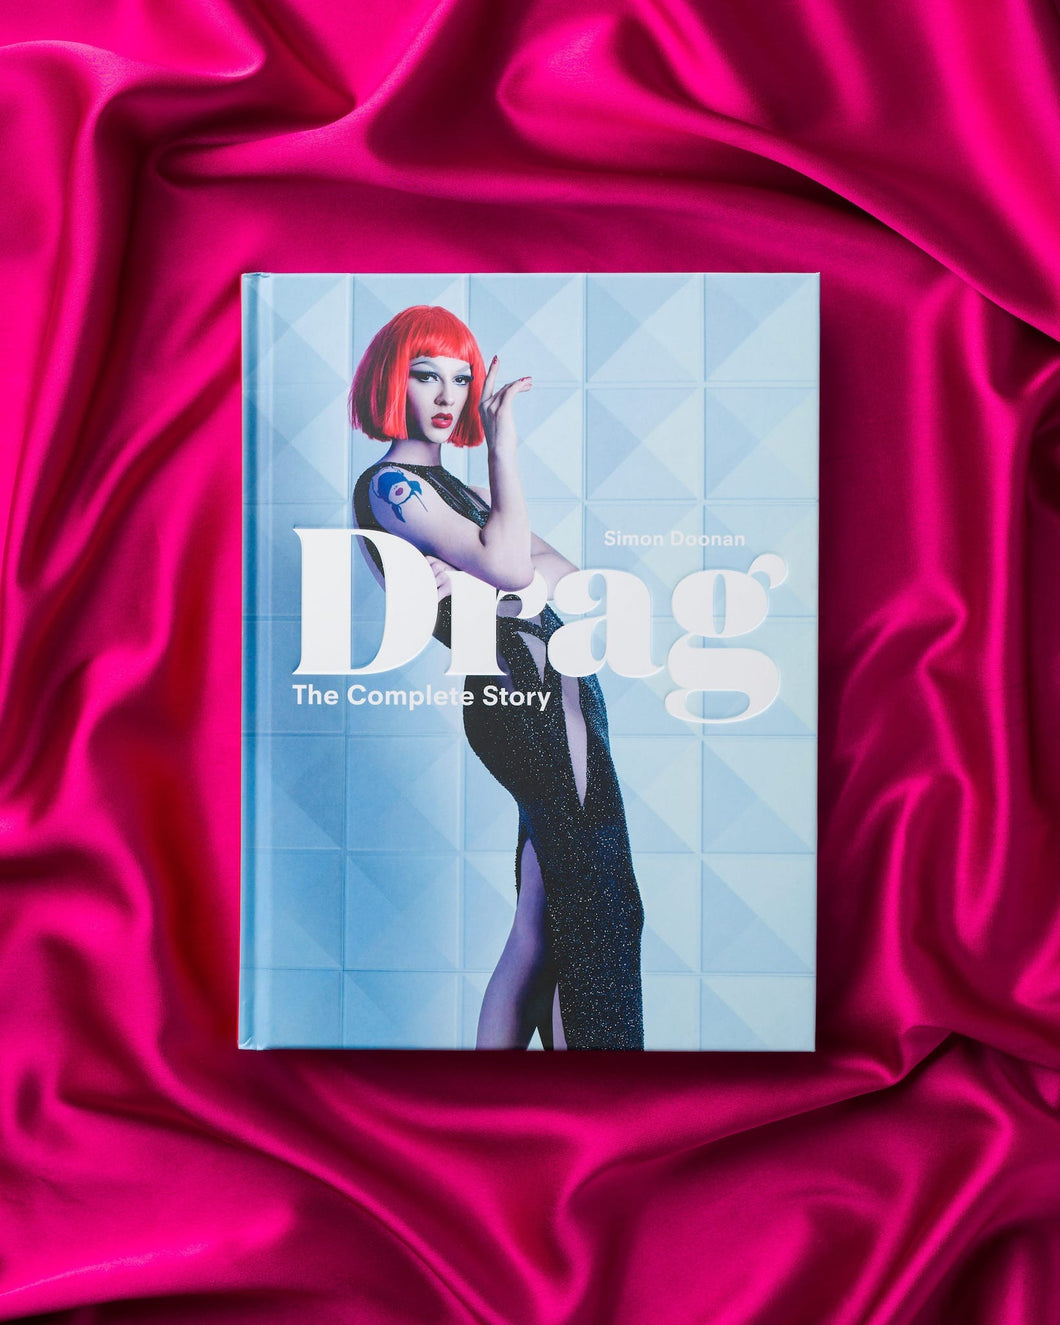 Drag: The Complete Story